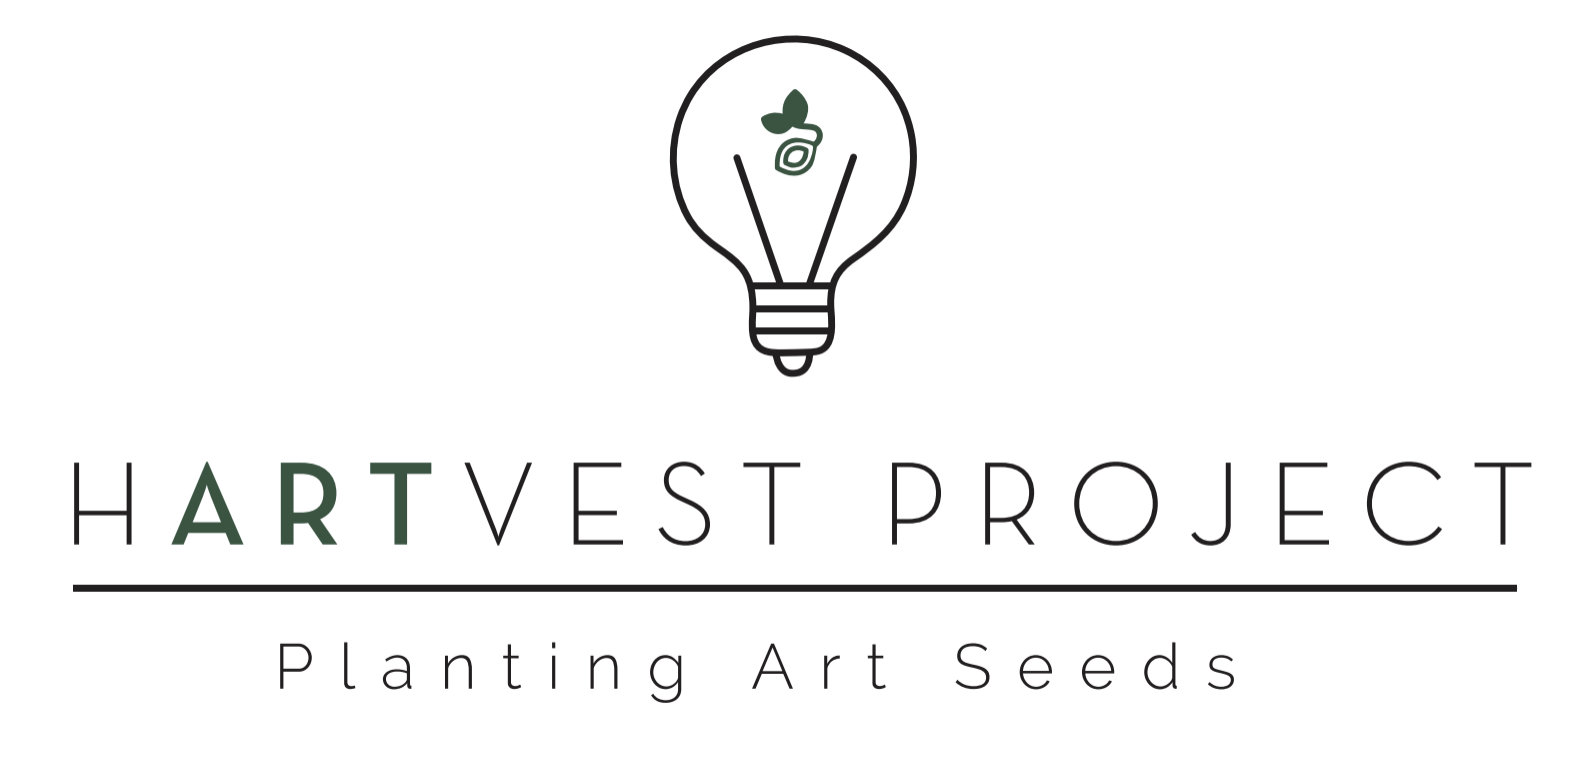 Harvest Project planting art seeds